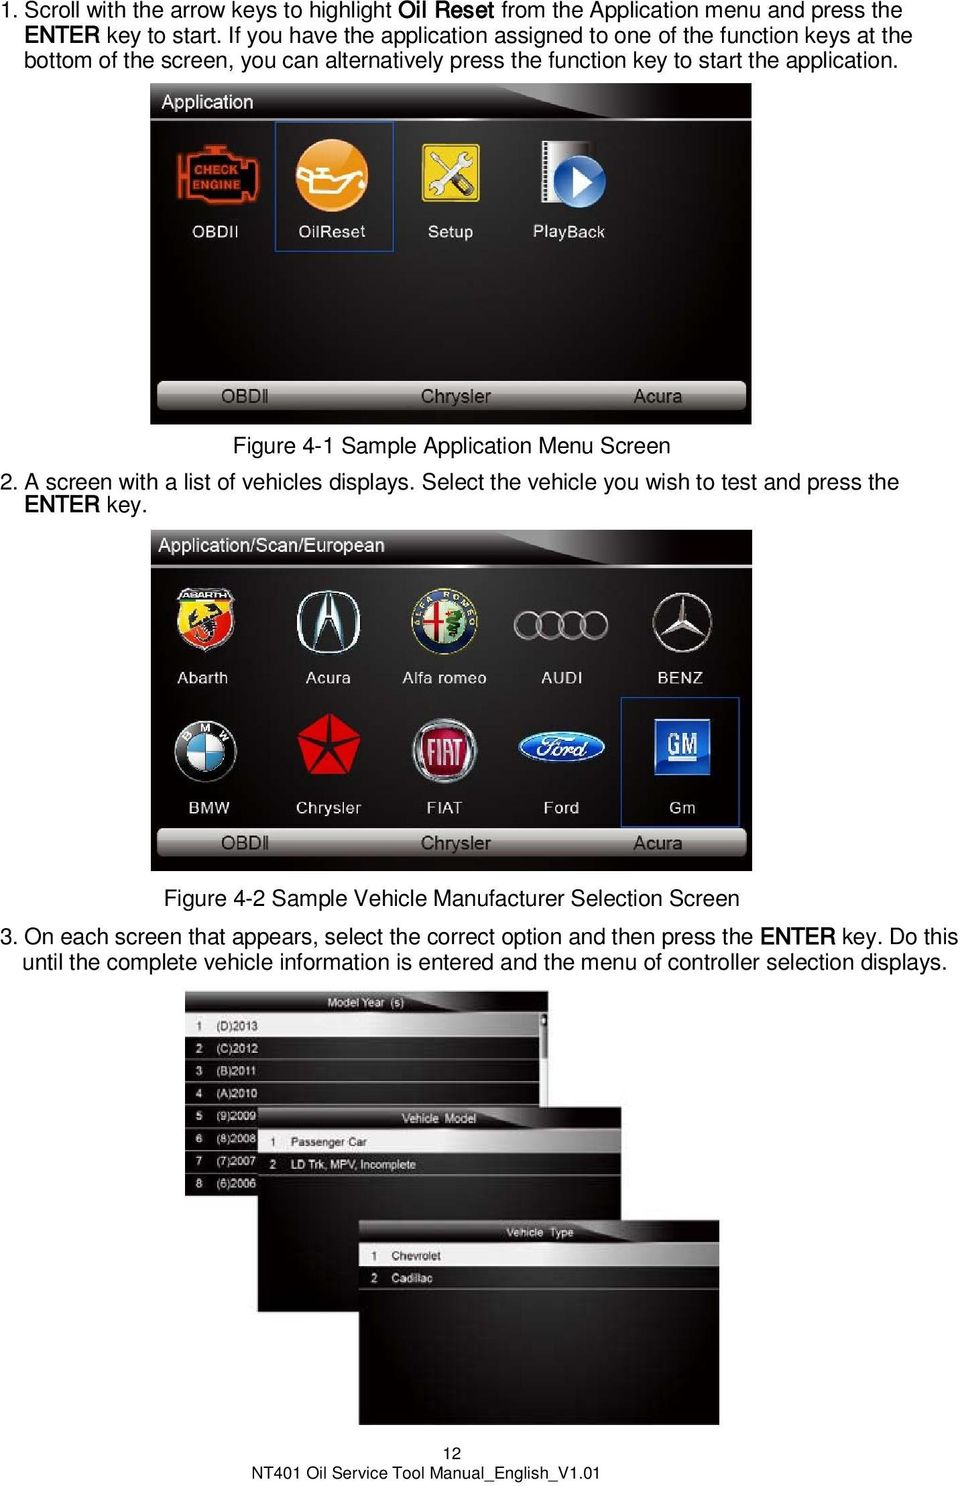 Figure 4-1 Sample Application Menu Screen 2. A screen with a list of vehicles displays. Select the vehicle you wish to test and press the ENTER key.